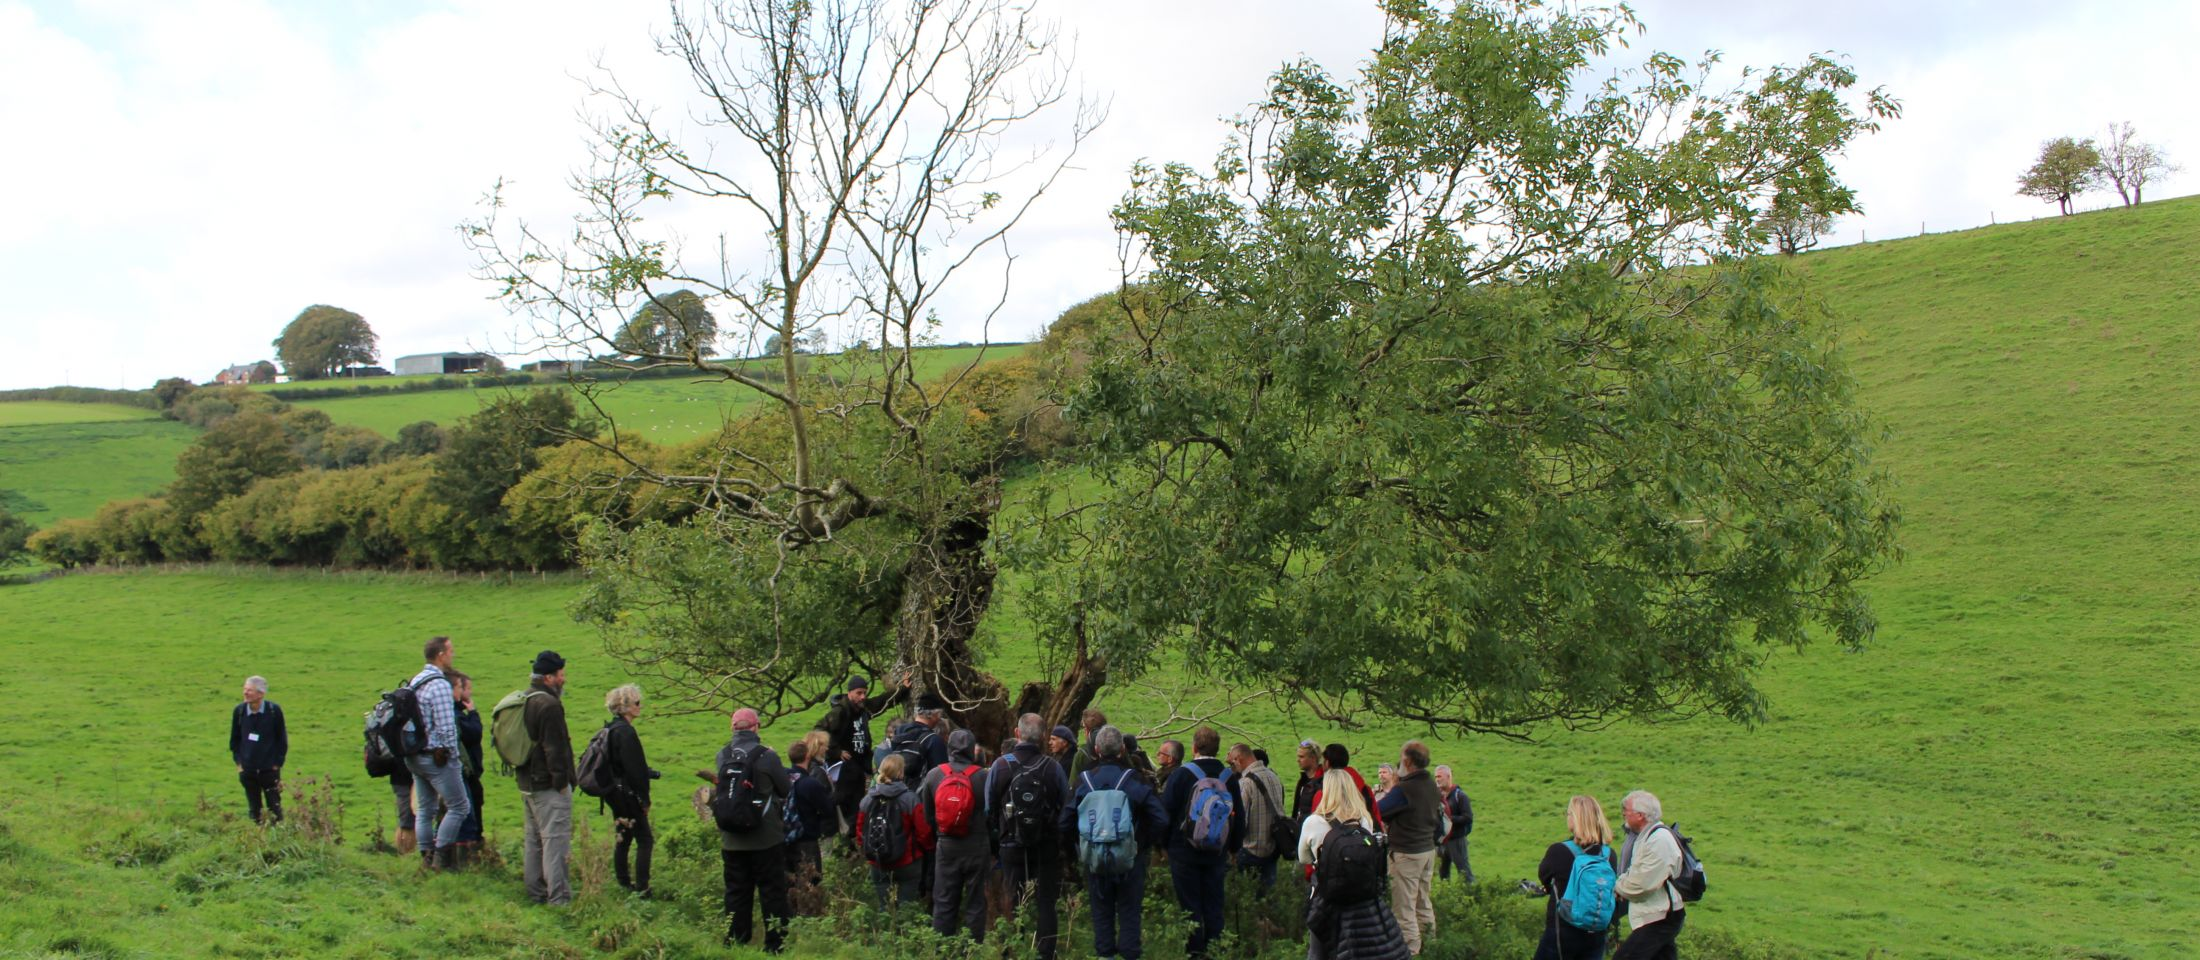 Veteran ash tree surrounded by Ancient Tree Forum, Dorset 2017. Photo: Kent Downs